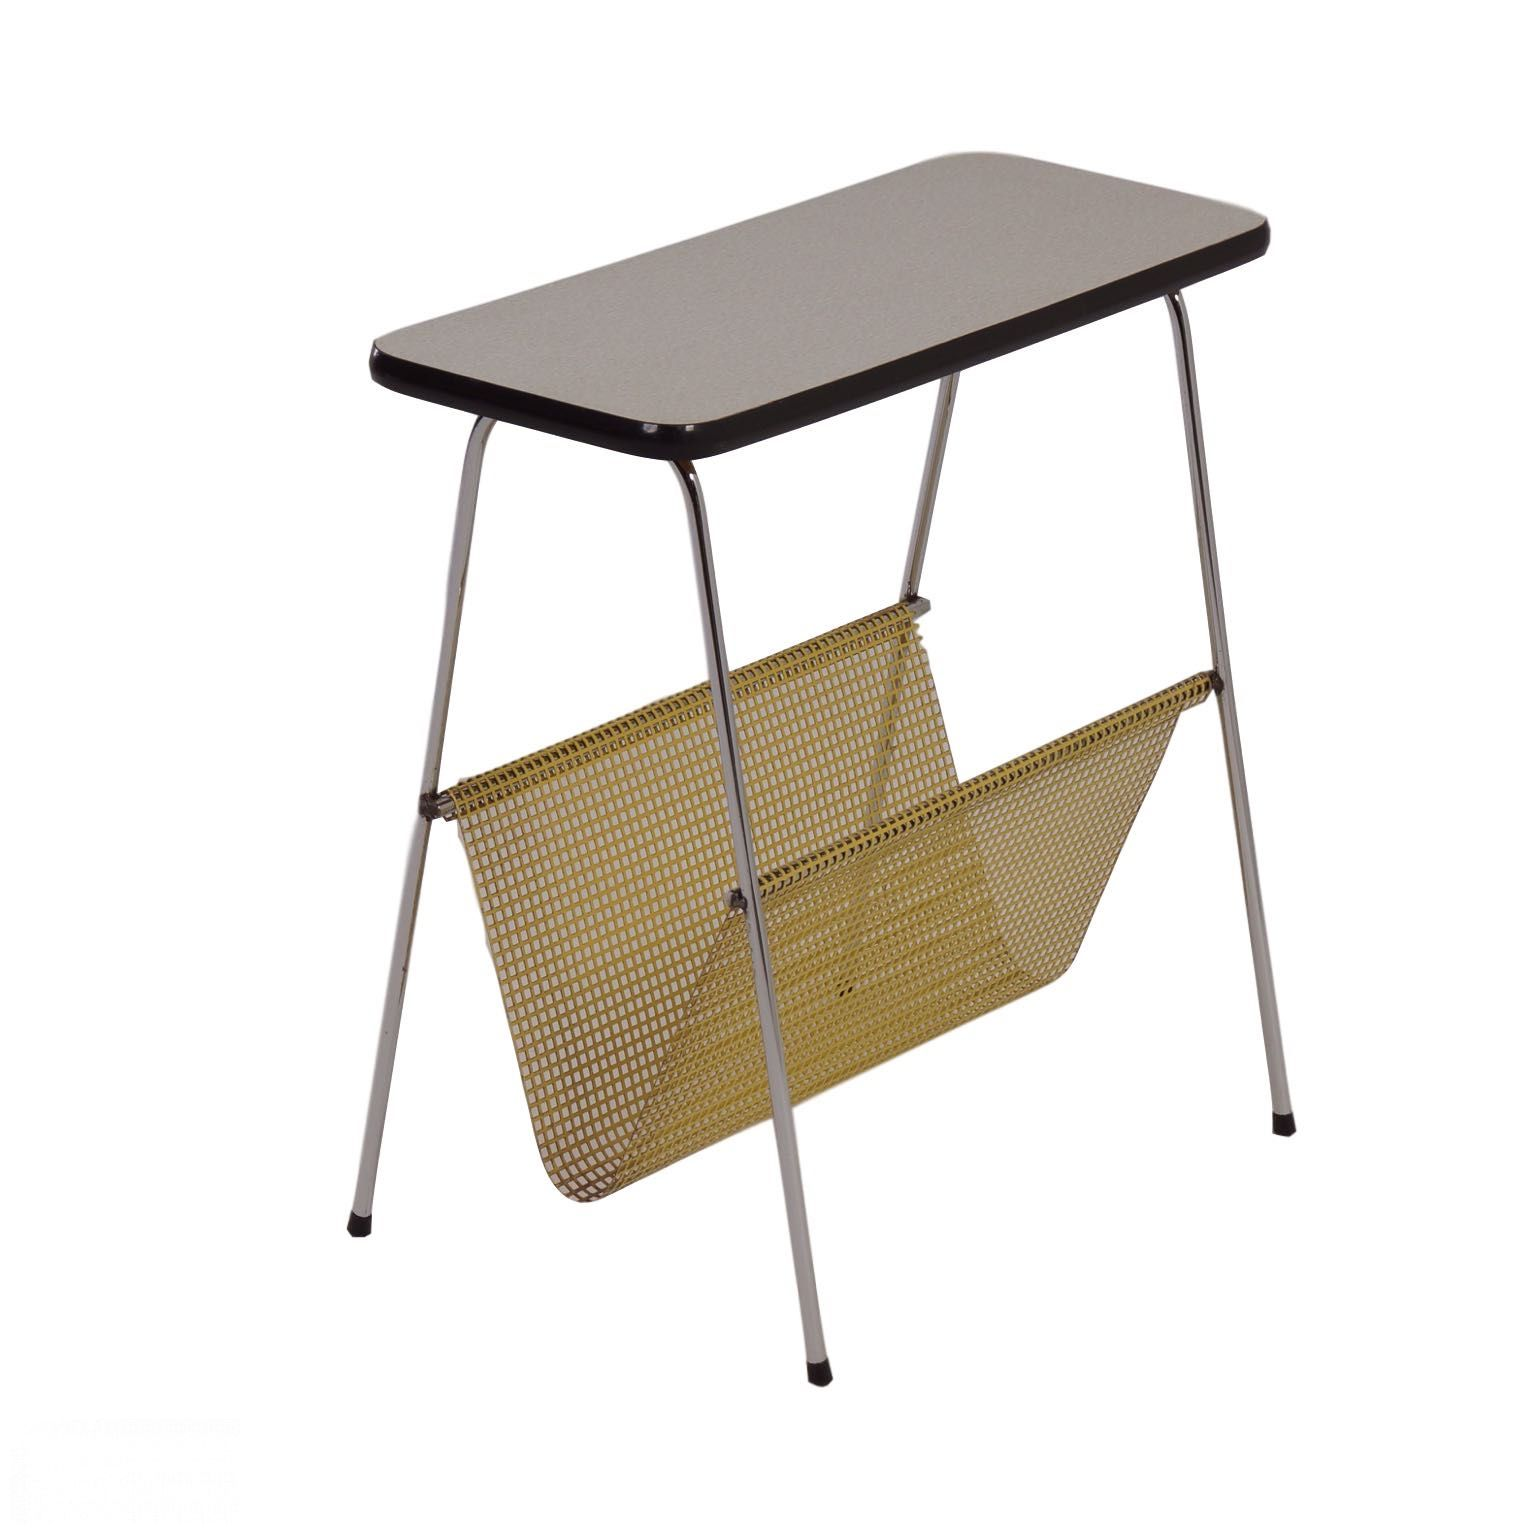 Wonderful image of  Design Pilastro Style Side Table with and Magazine Rack 1960s Ztijl with #8A7141 color and 1536x1536 pixels